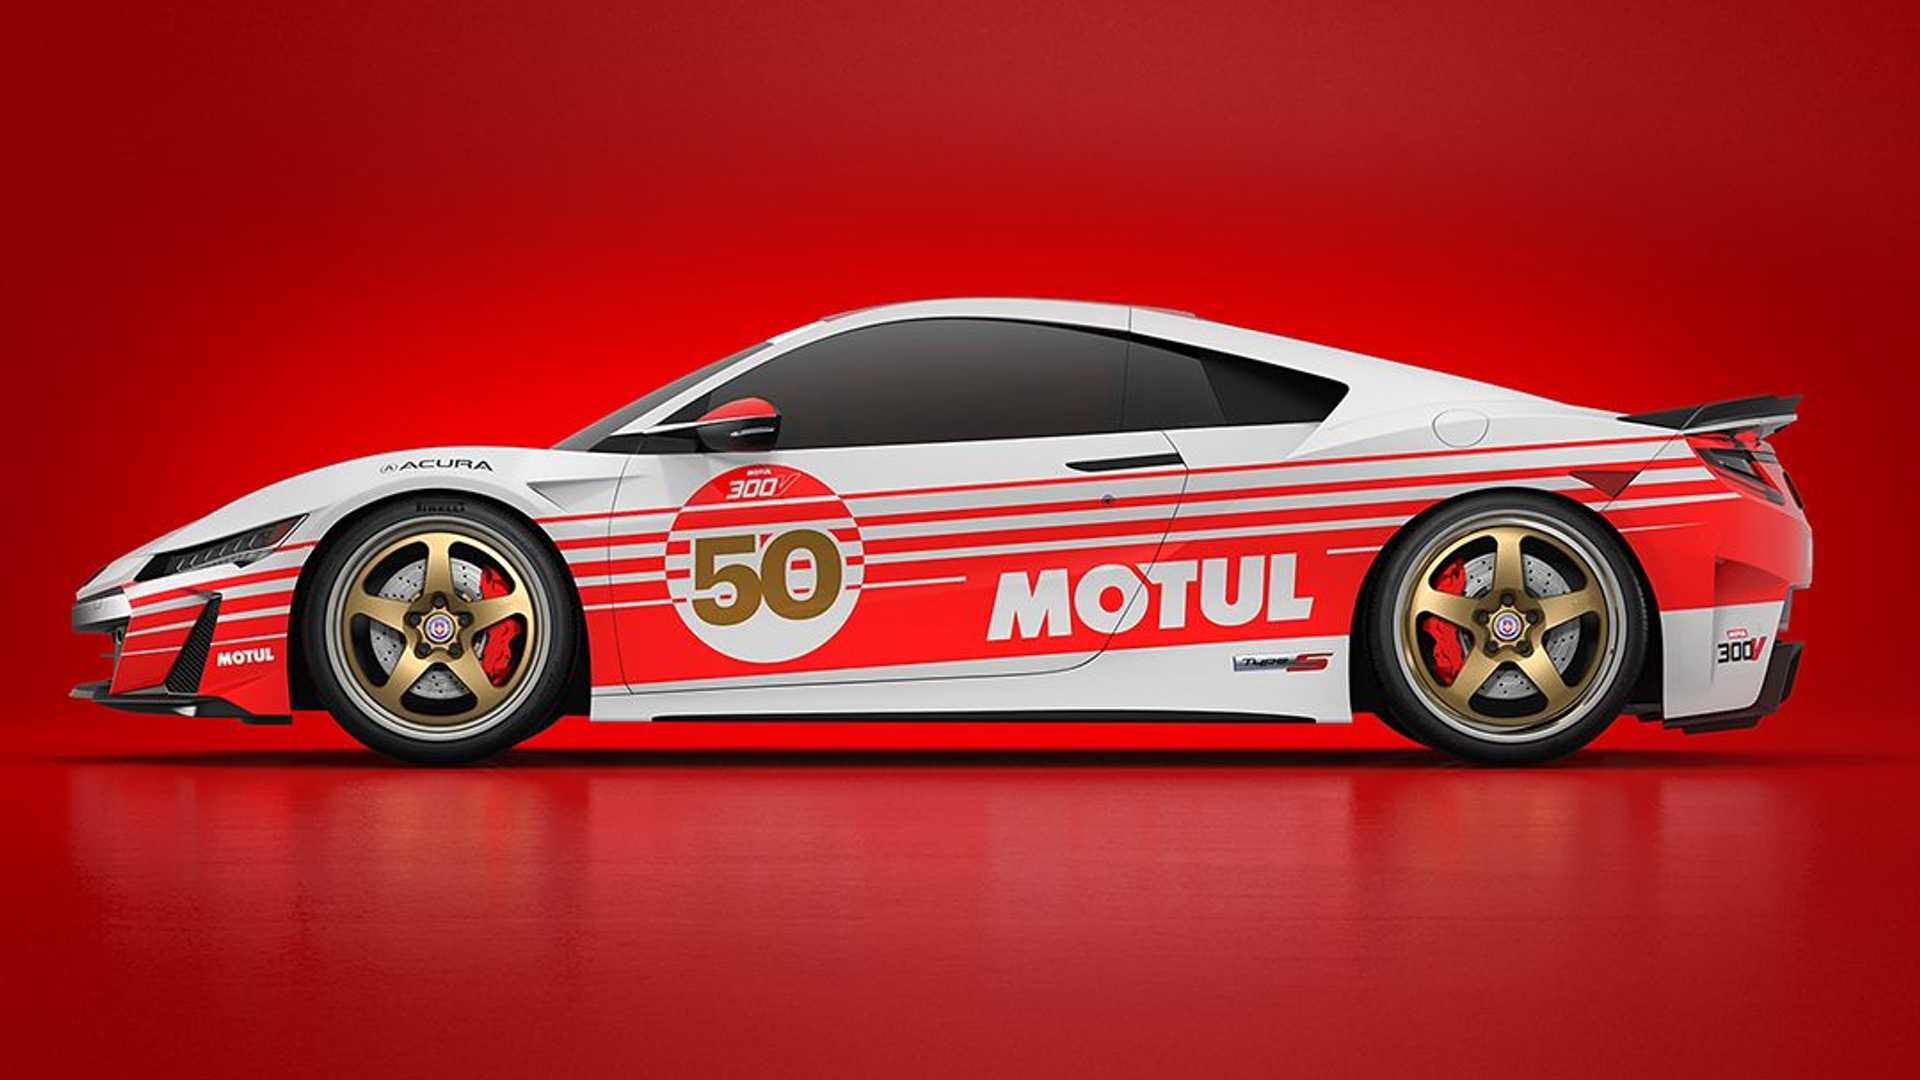 French oil manufacturer Motul is well known in the professional motorsports world thanks to supplying teams with high-quality racing oil and putting its colors on racecars from time to time. Here's an Acura NSX Type S with a freshly applied Motul livery.